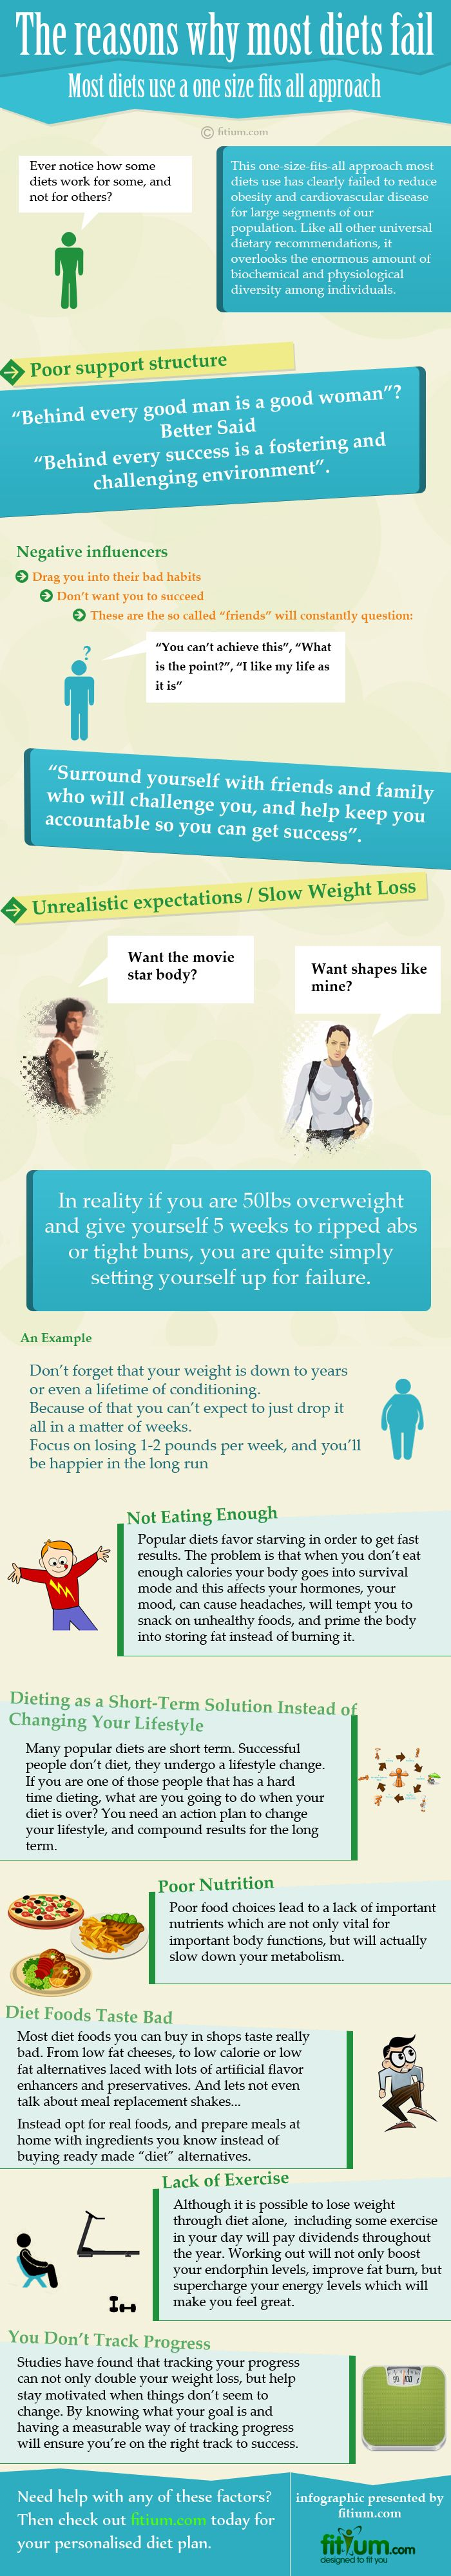 View mobile site about digitalbuyer com affiliate program site map - Top Reasons Why Diets Fail Infographic